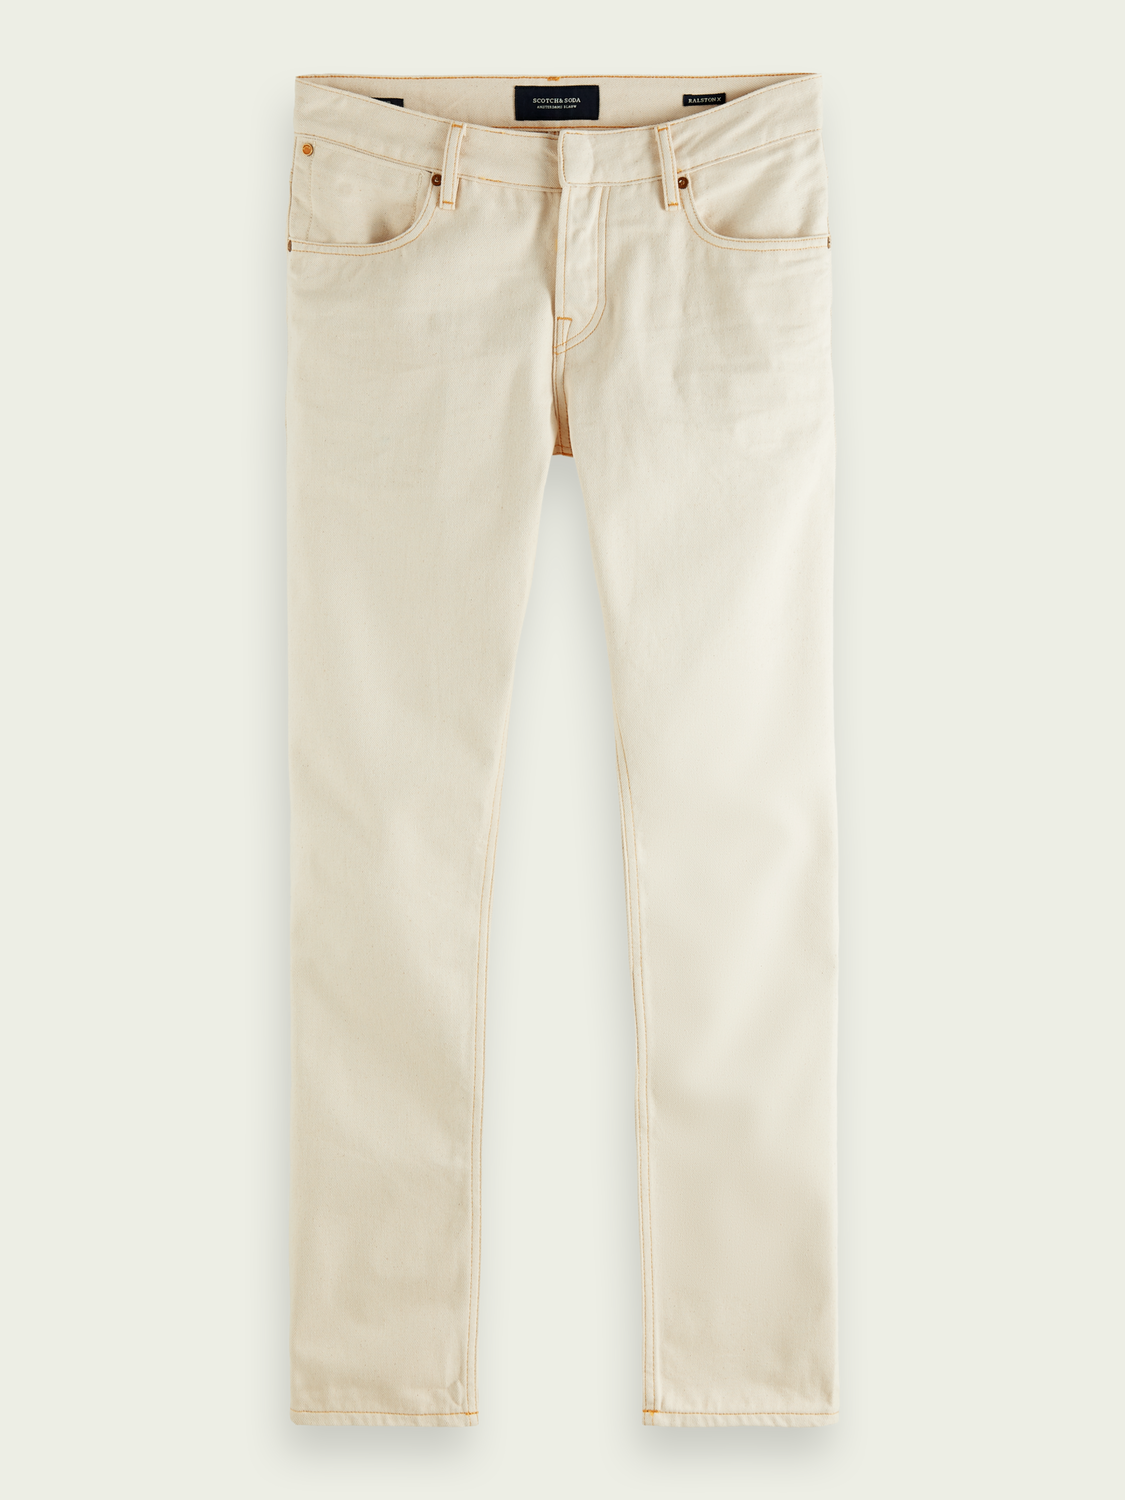 Heren Ralston Plus - Natural Ecru | Regular slim fit jeans